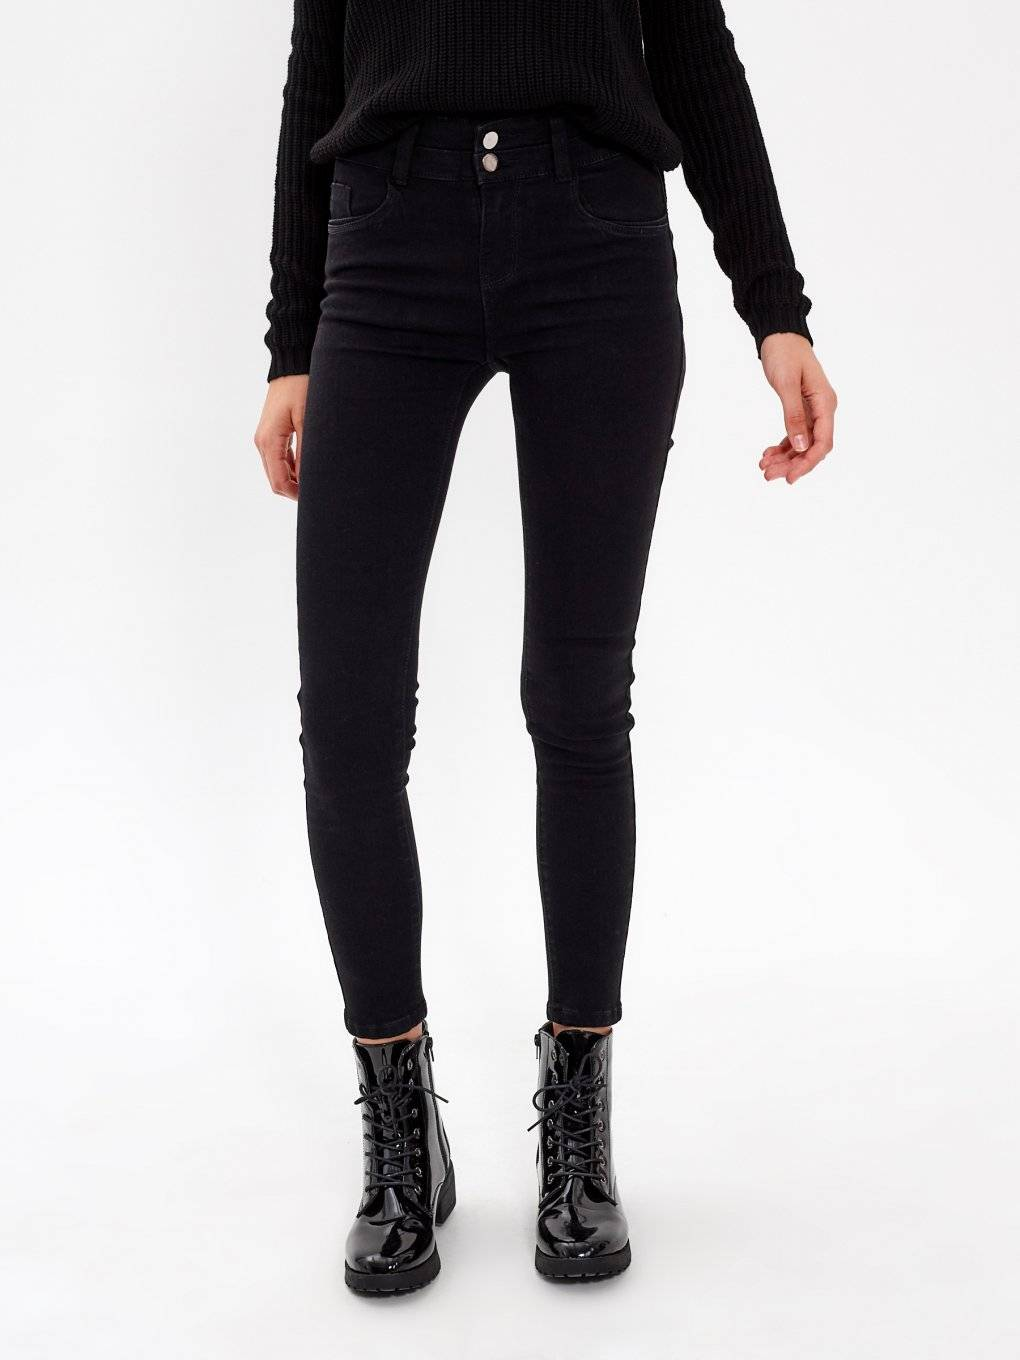 HIGH-WAIST SKINNY JEANS IN DARK BLUE WASH